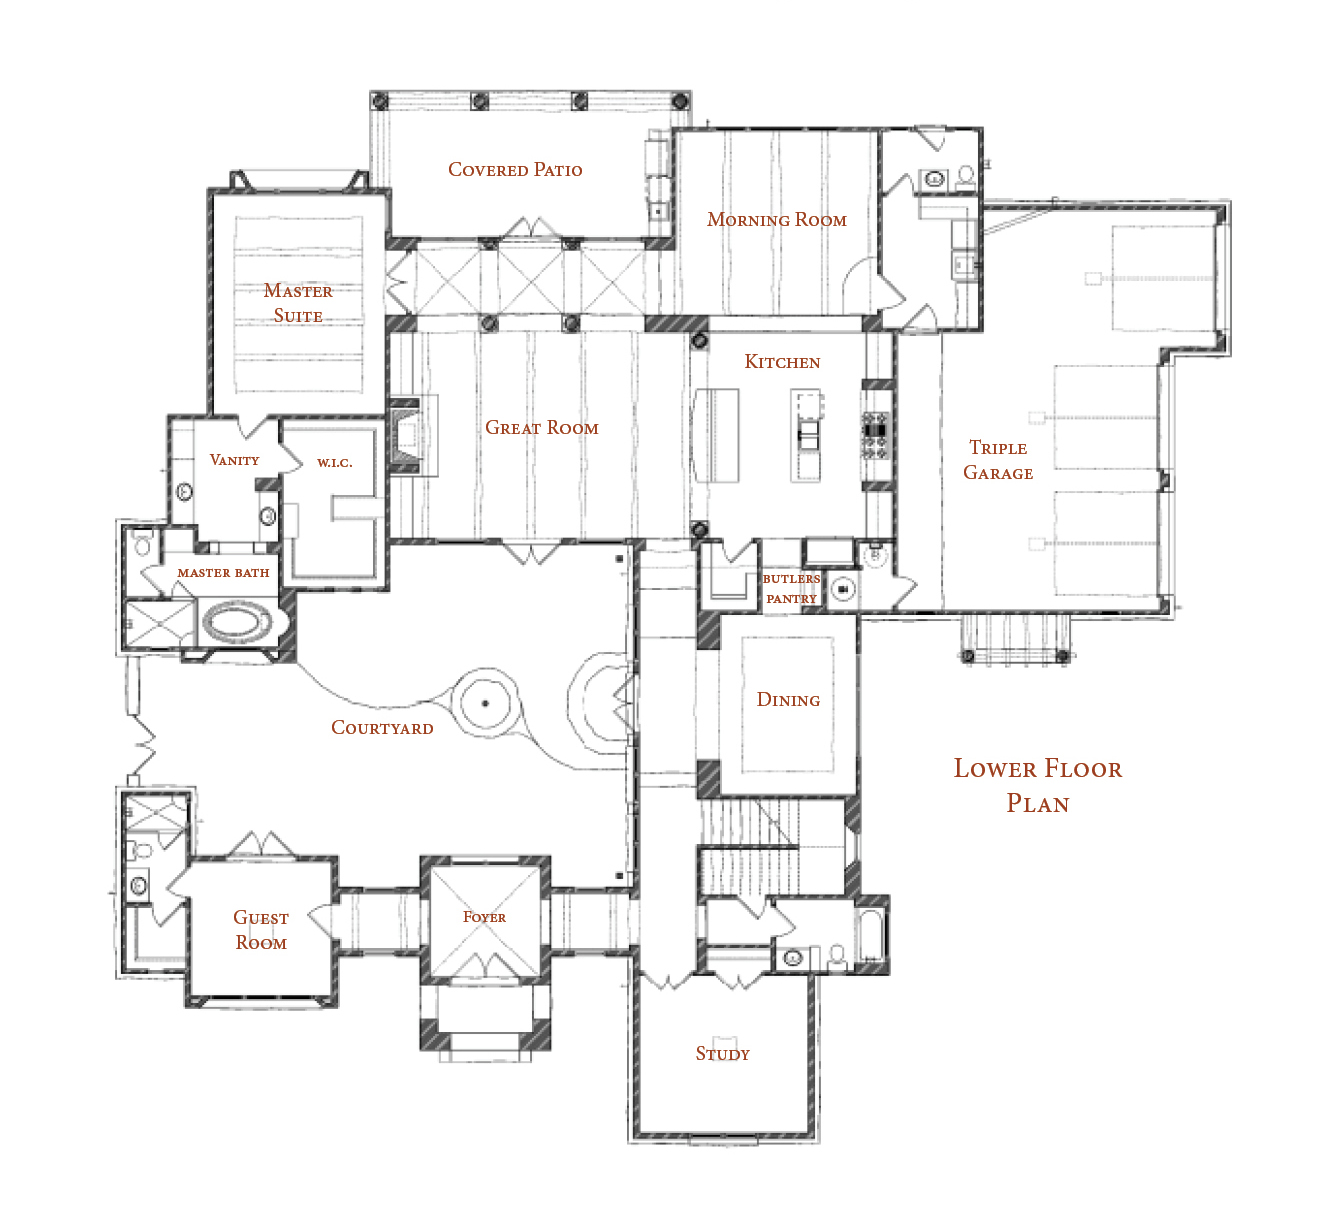 Top Notch Plenum System By in addition Boconcept Bellevue Sheet A203 Track Lighting Plan likewise H ton Inn Suites Seatac Sheet A113 Enlarged Porte Cochere Plans And Sections furthermore Mini Chopper Frame Blueprints furthermore Wod Jeep Chassis. on build custom home plans